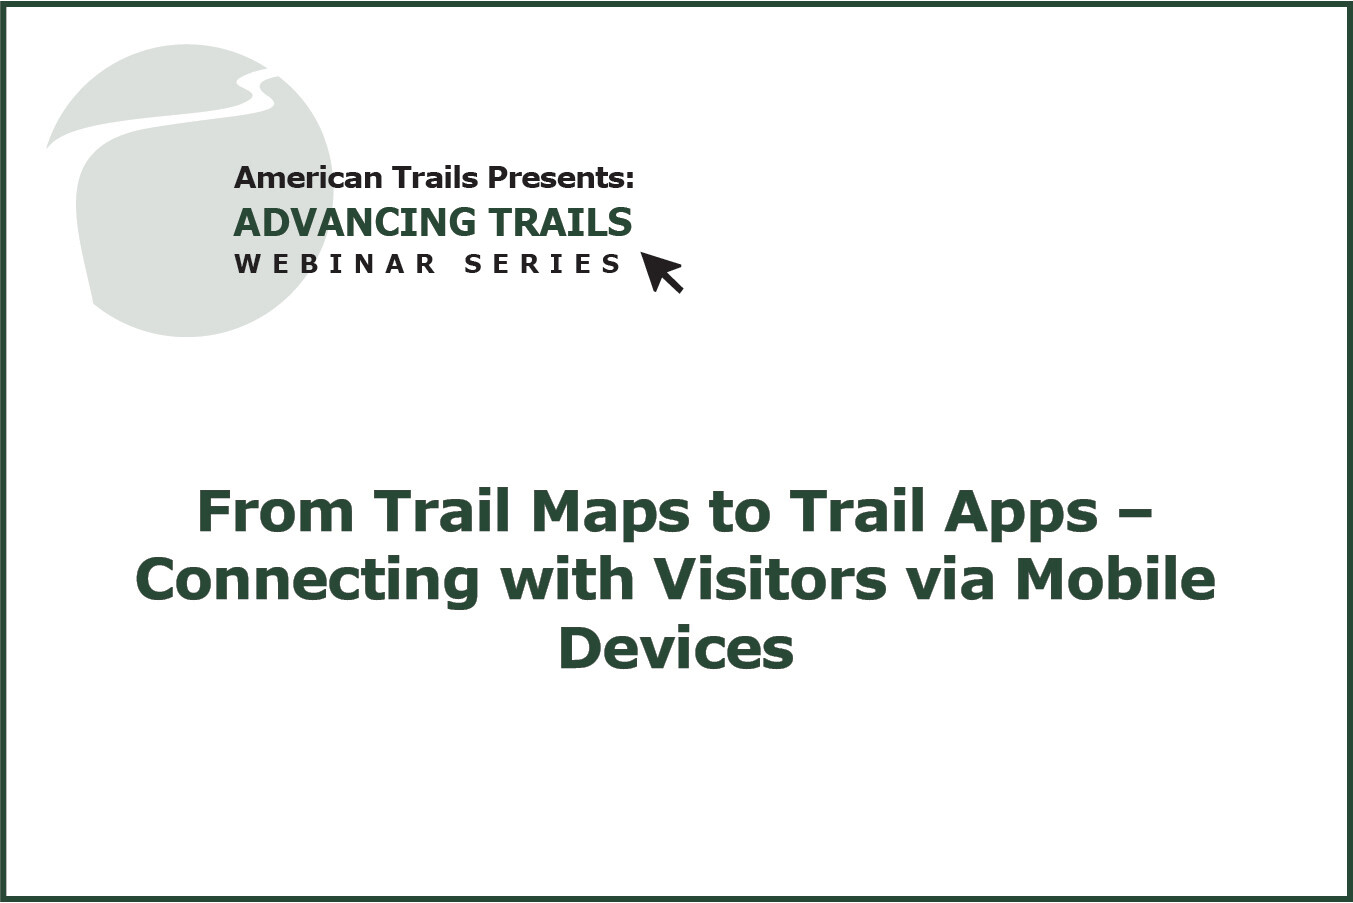 From Trail Maps to Trail Apps – Connecting with Visitors via Mobile Devices (RECORDING)